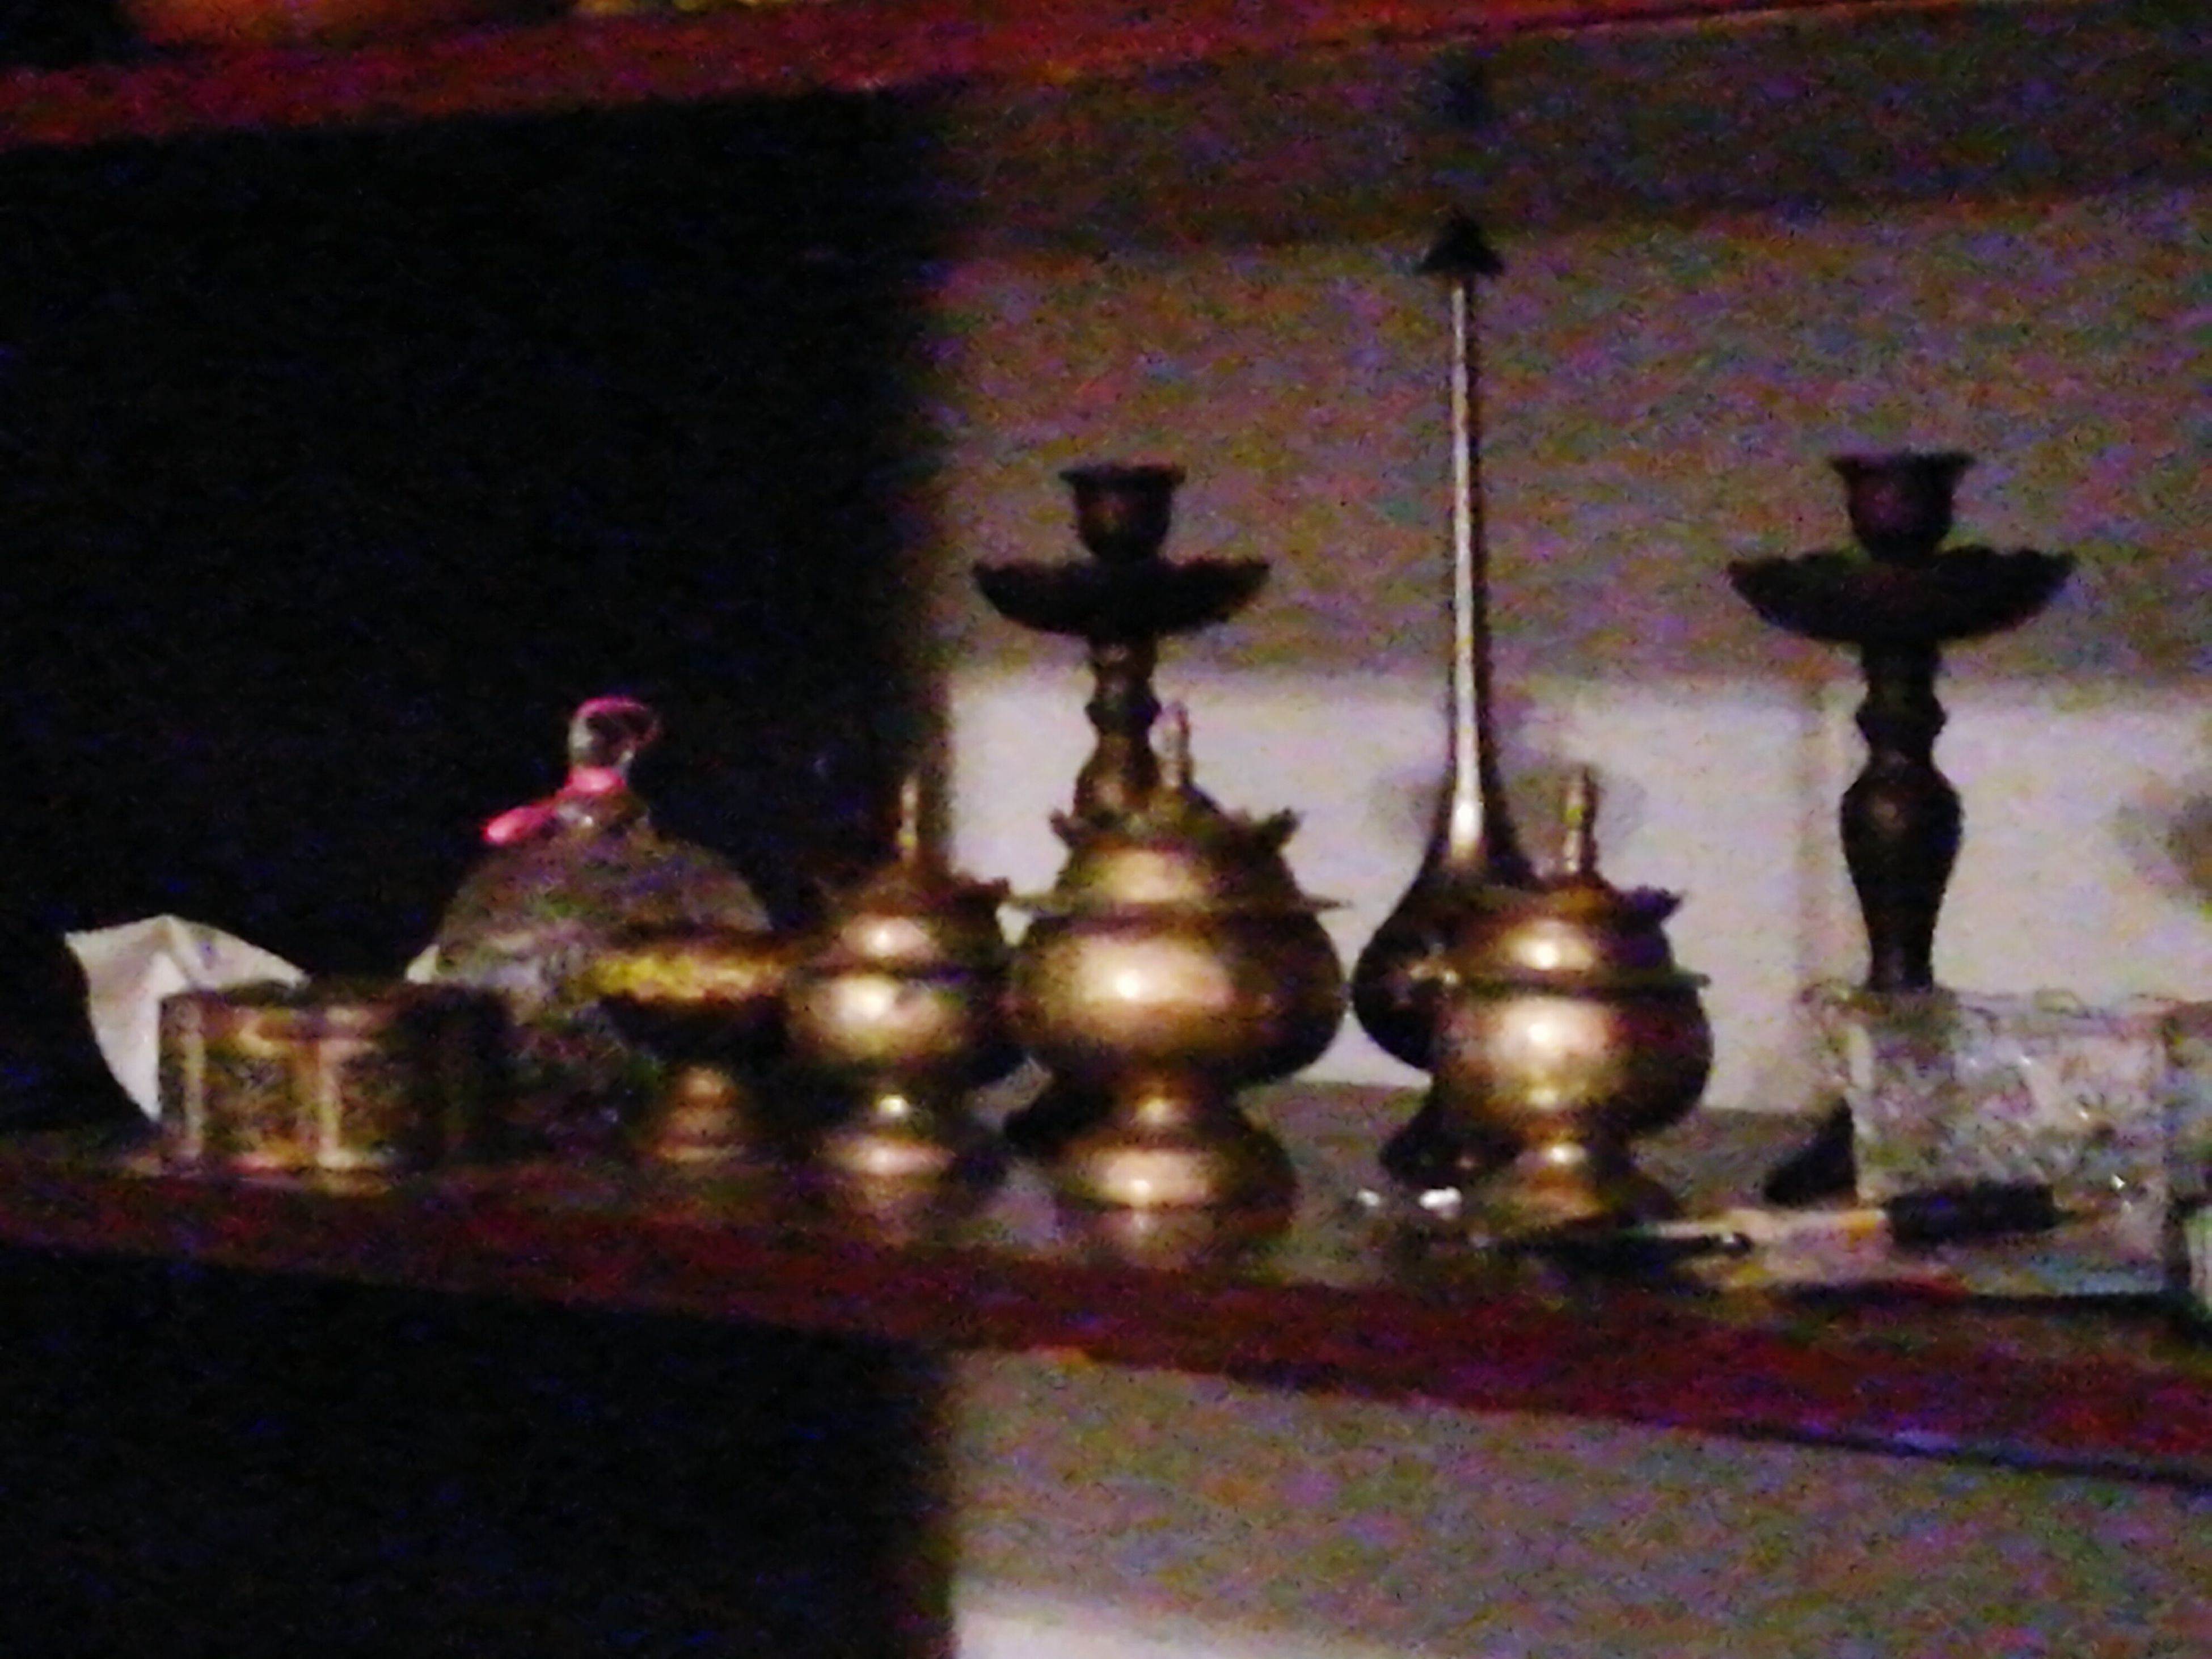 religion, place of worship, indoors, spirituality, no people, oil lamp, day